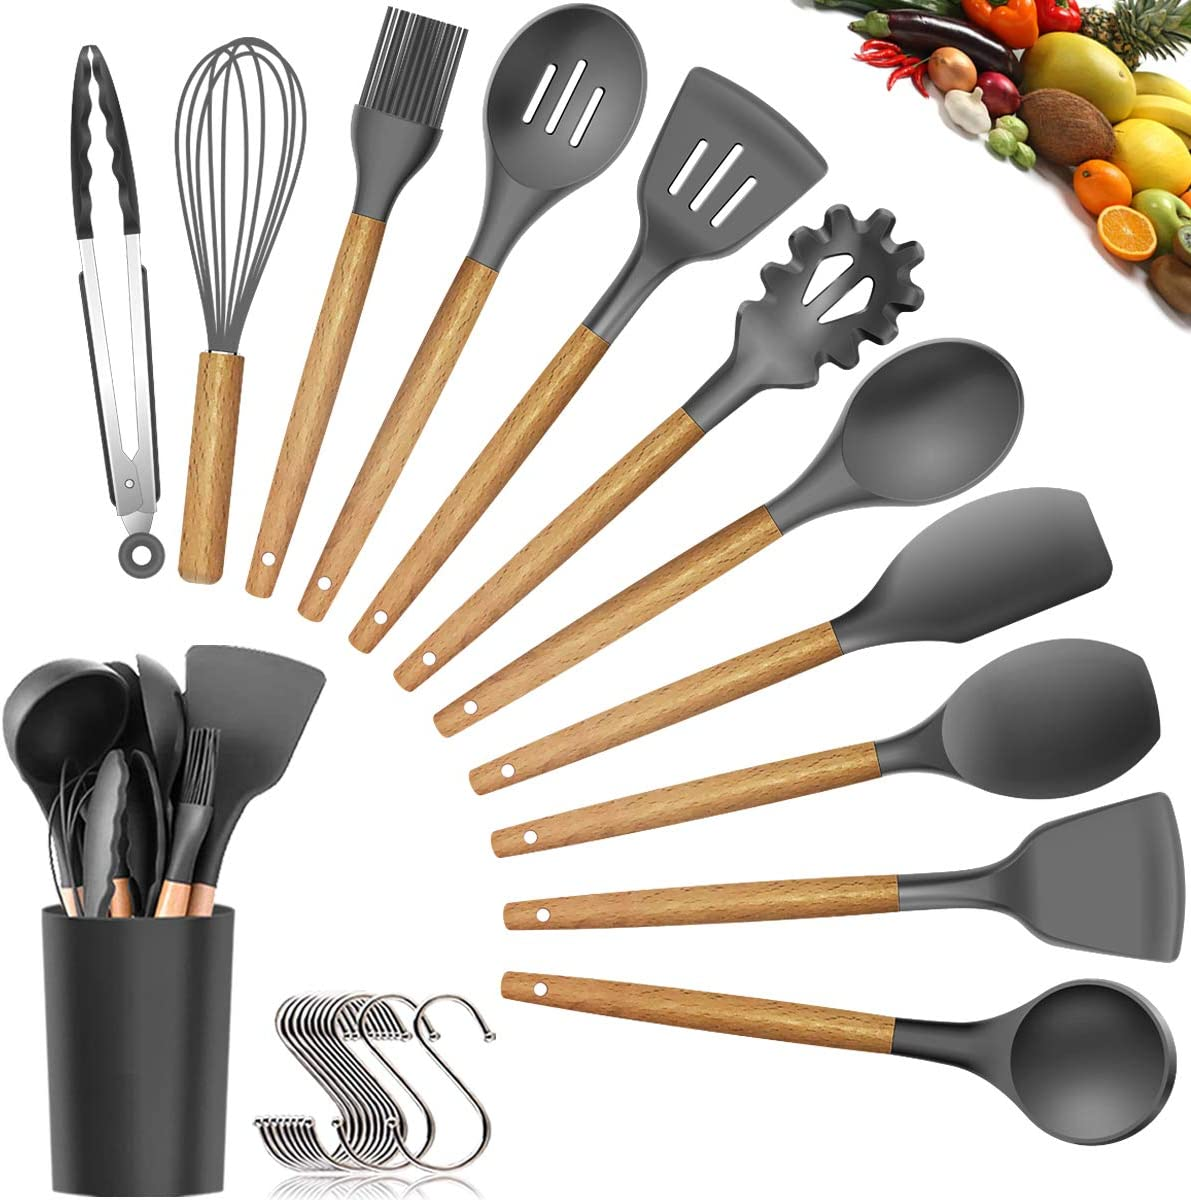 Silicone Cooking Utensils Kitchen Utensil Set - 11 Pieces Natural Wooden Handles Cooking Tools Turner Tongs Spatula Spoon for Nonstick Cookware